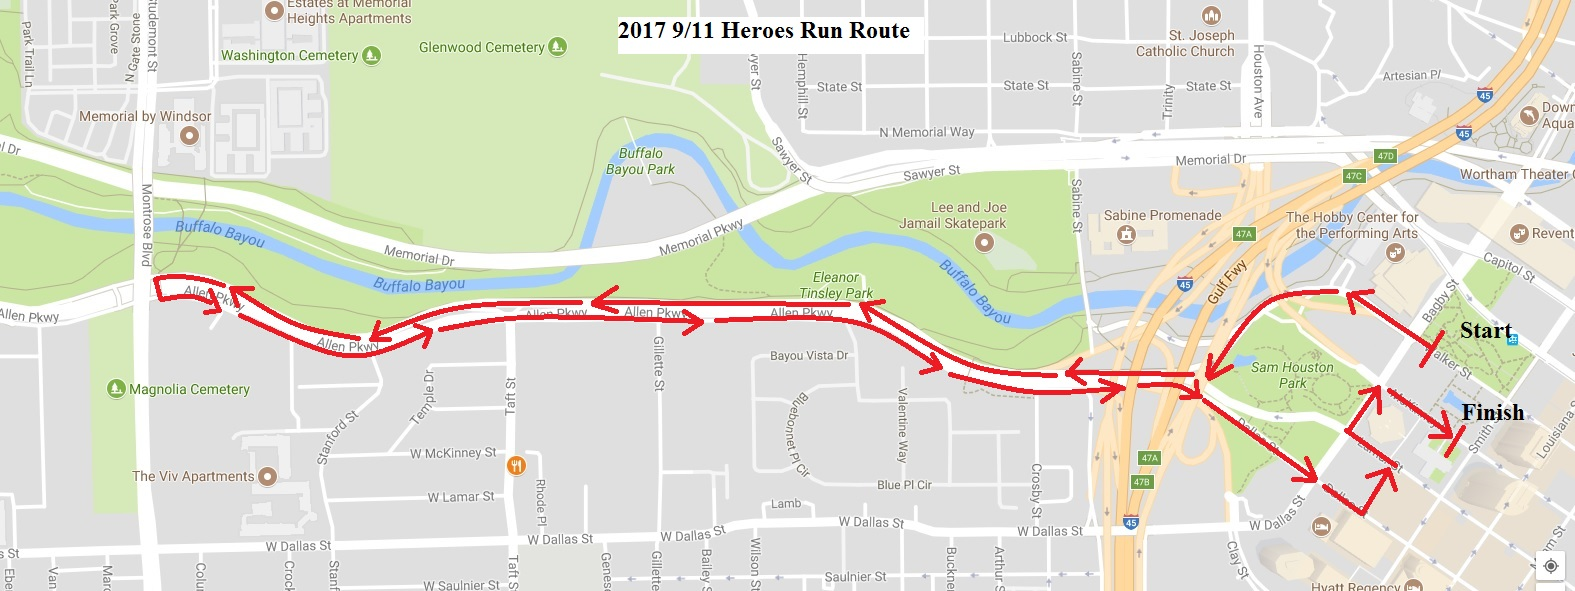 2017 Heroes Run Final Route